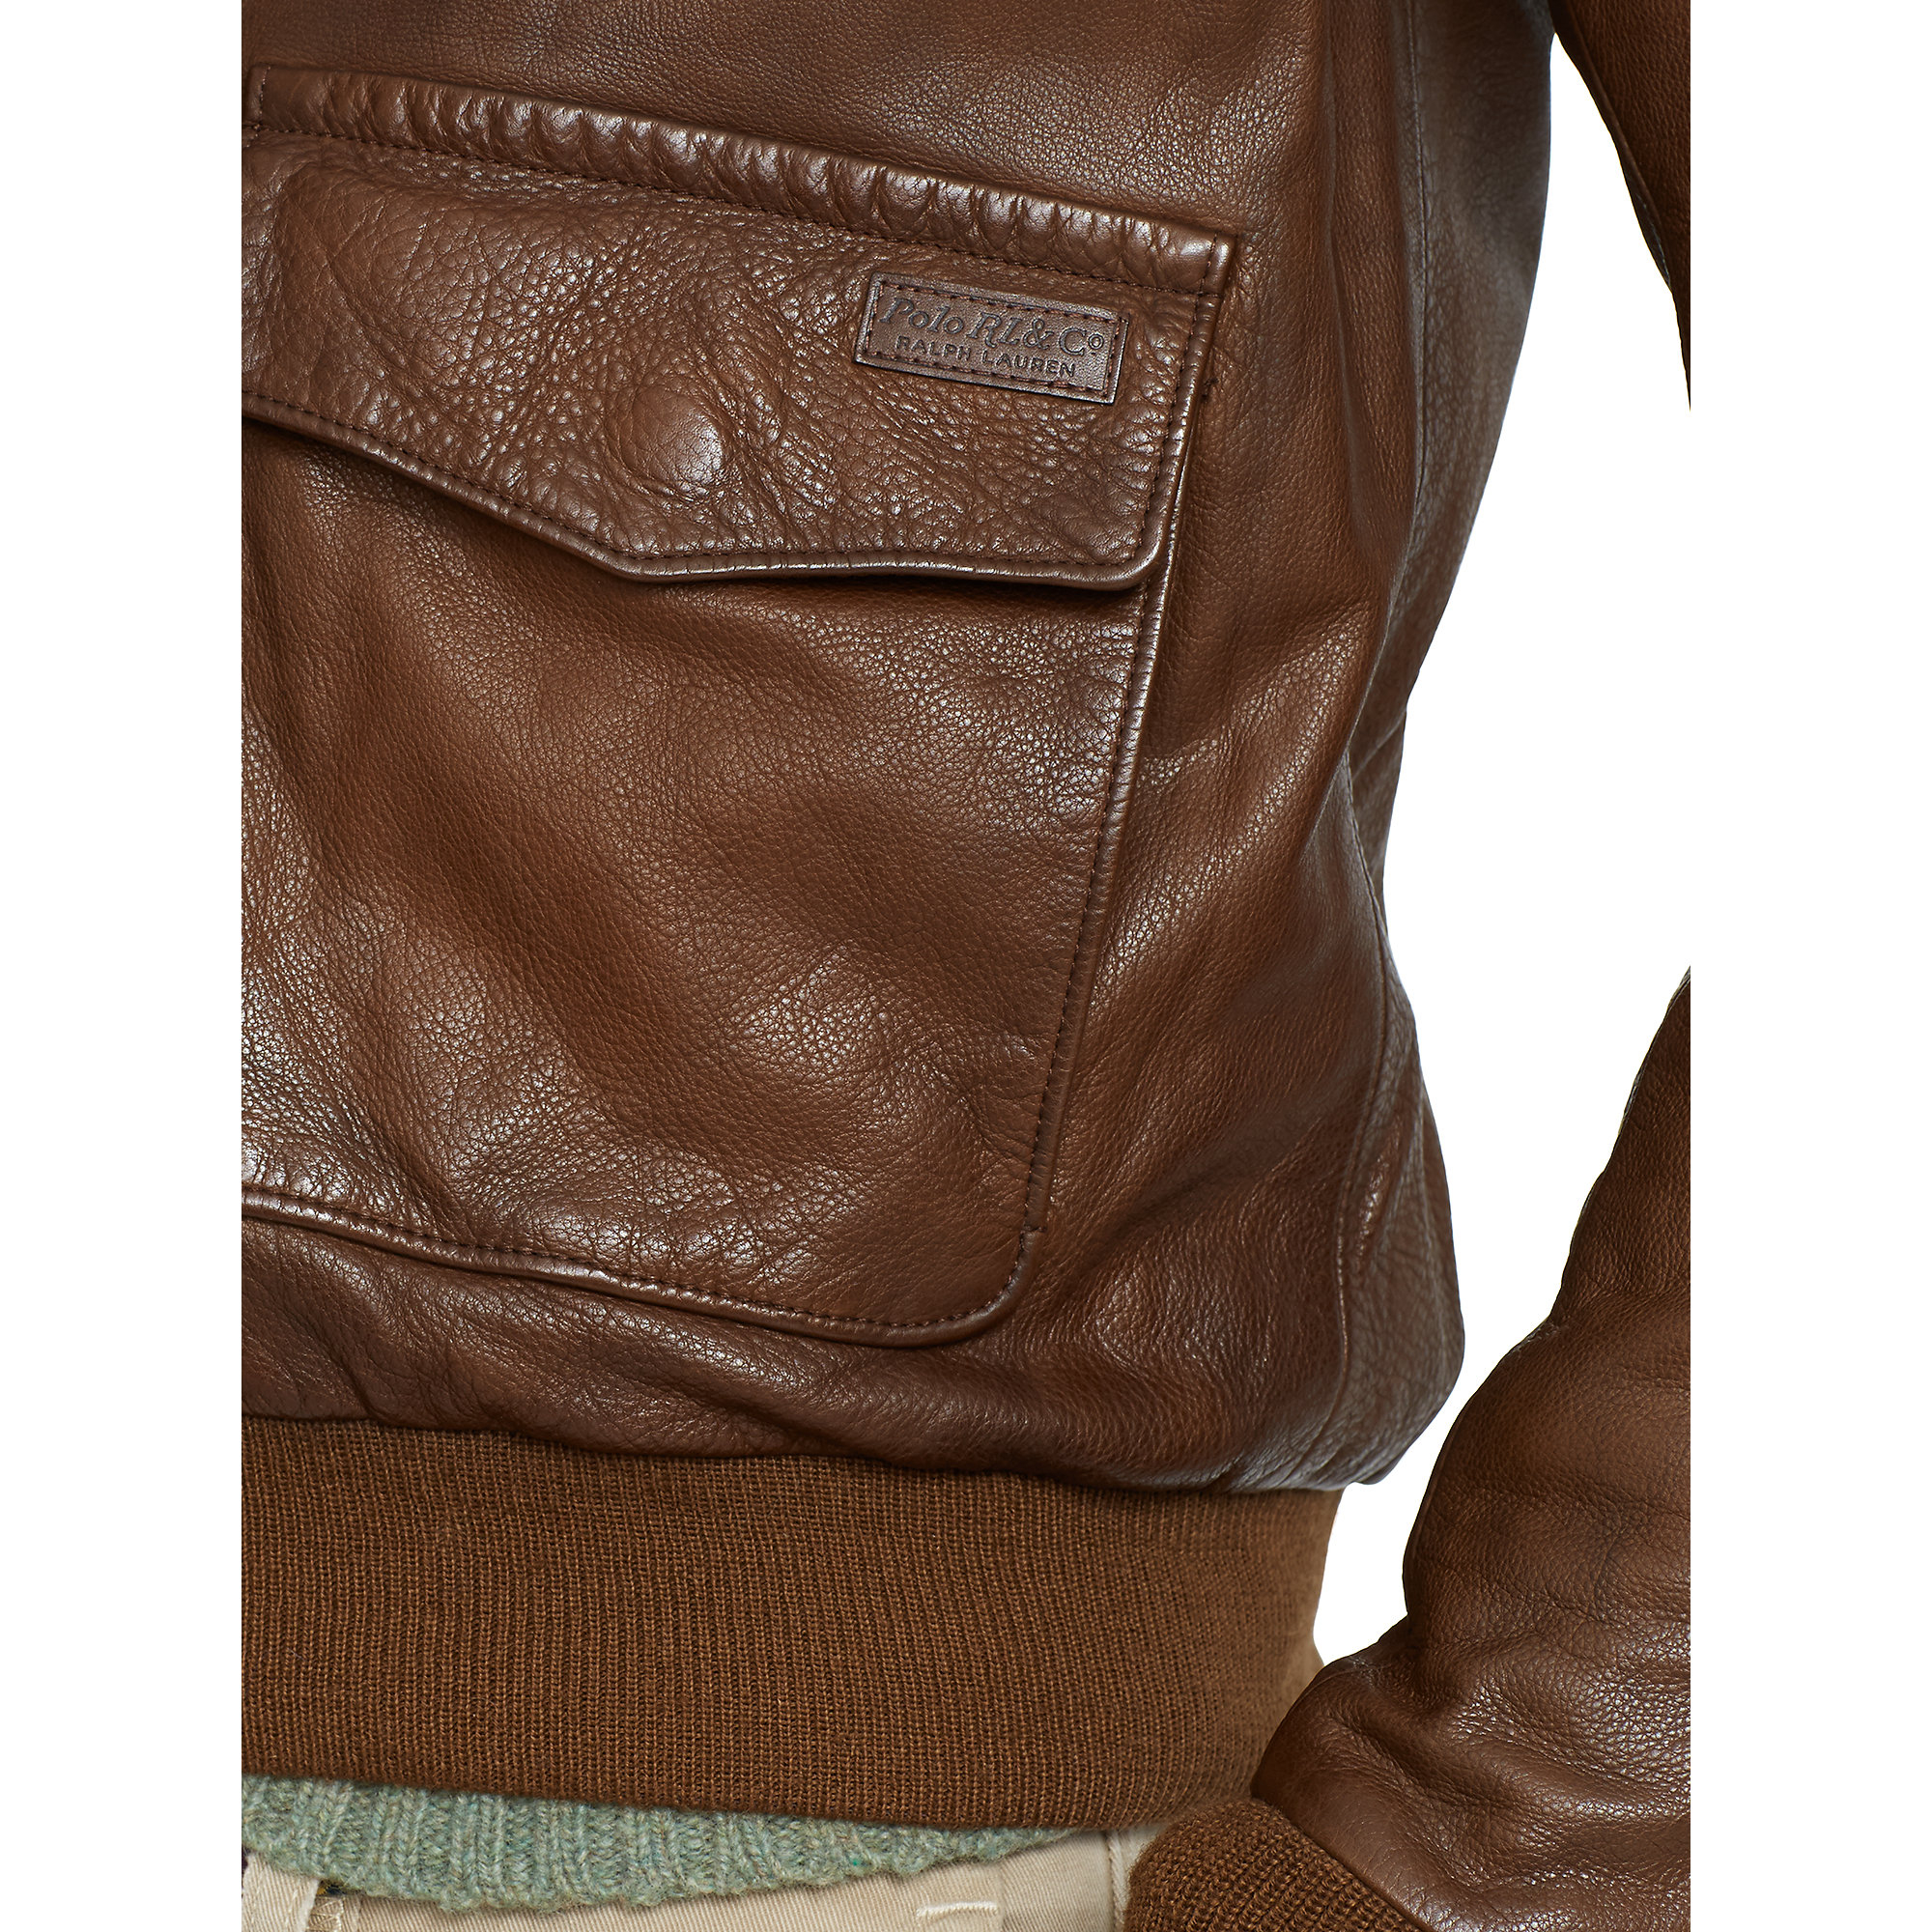 8749847256f1 Lyst - Polo Ralph Lauren Leather Farrington A2 Jacket in Brown for Men